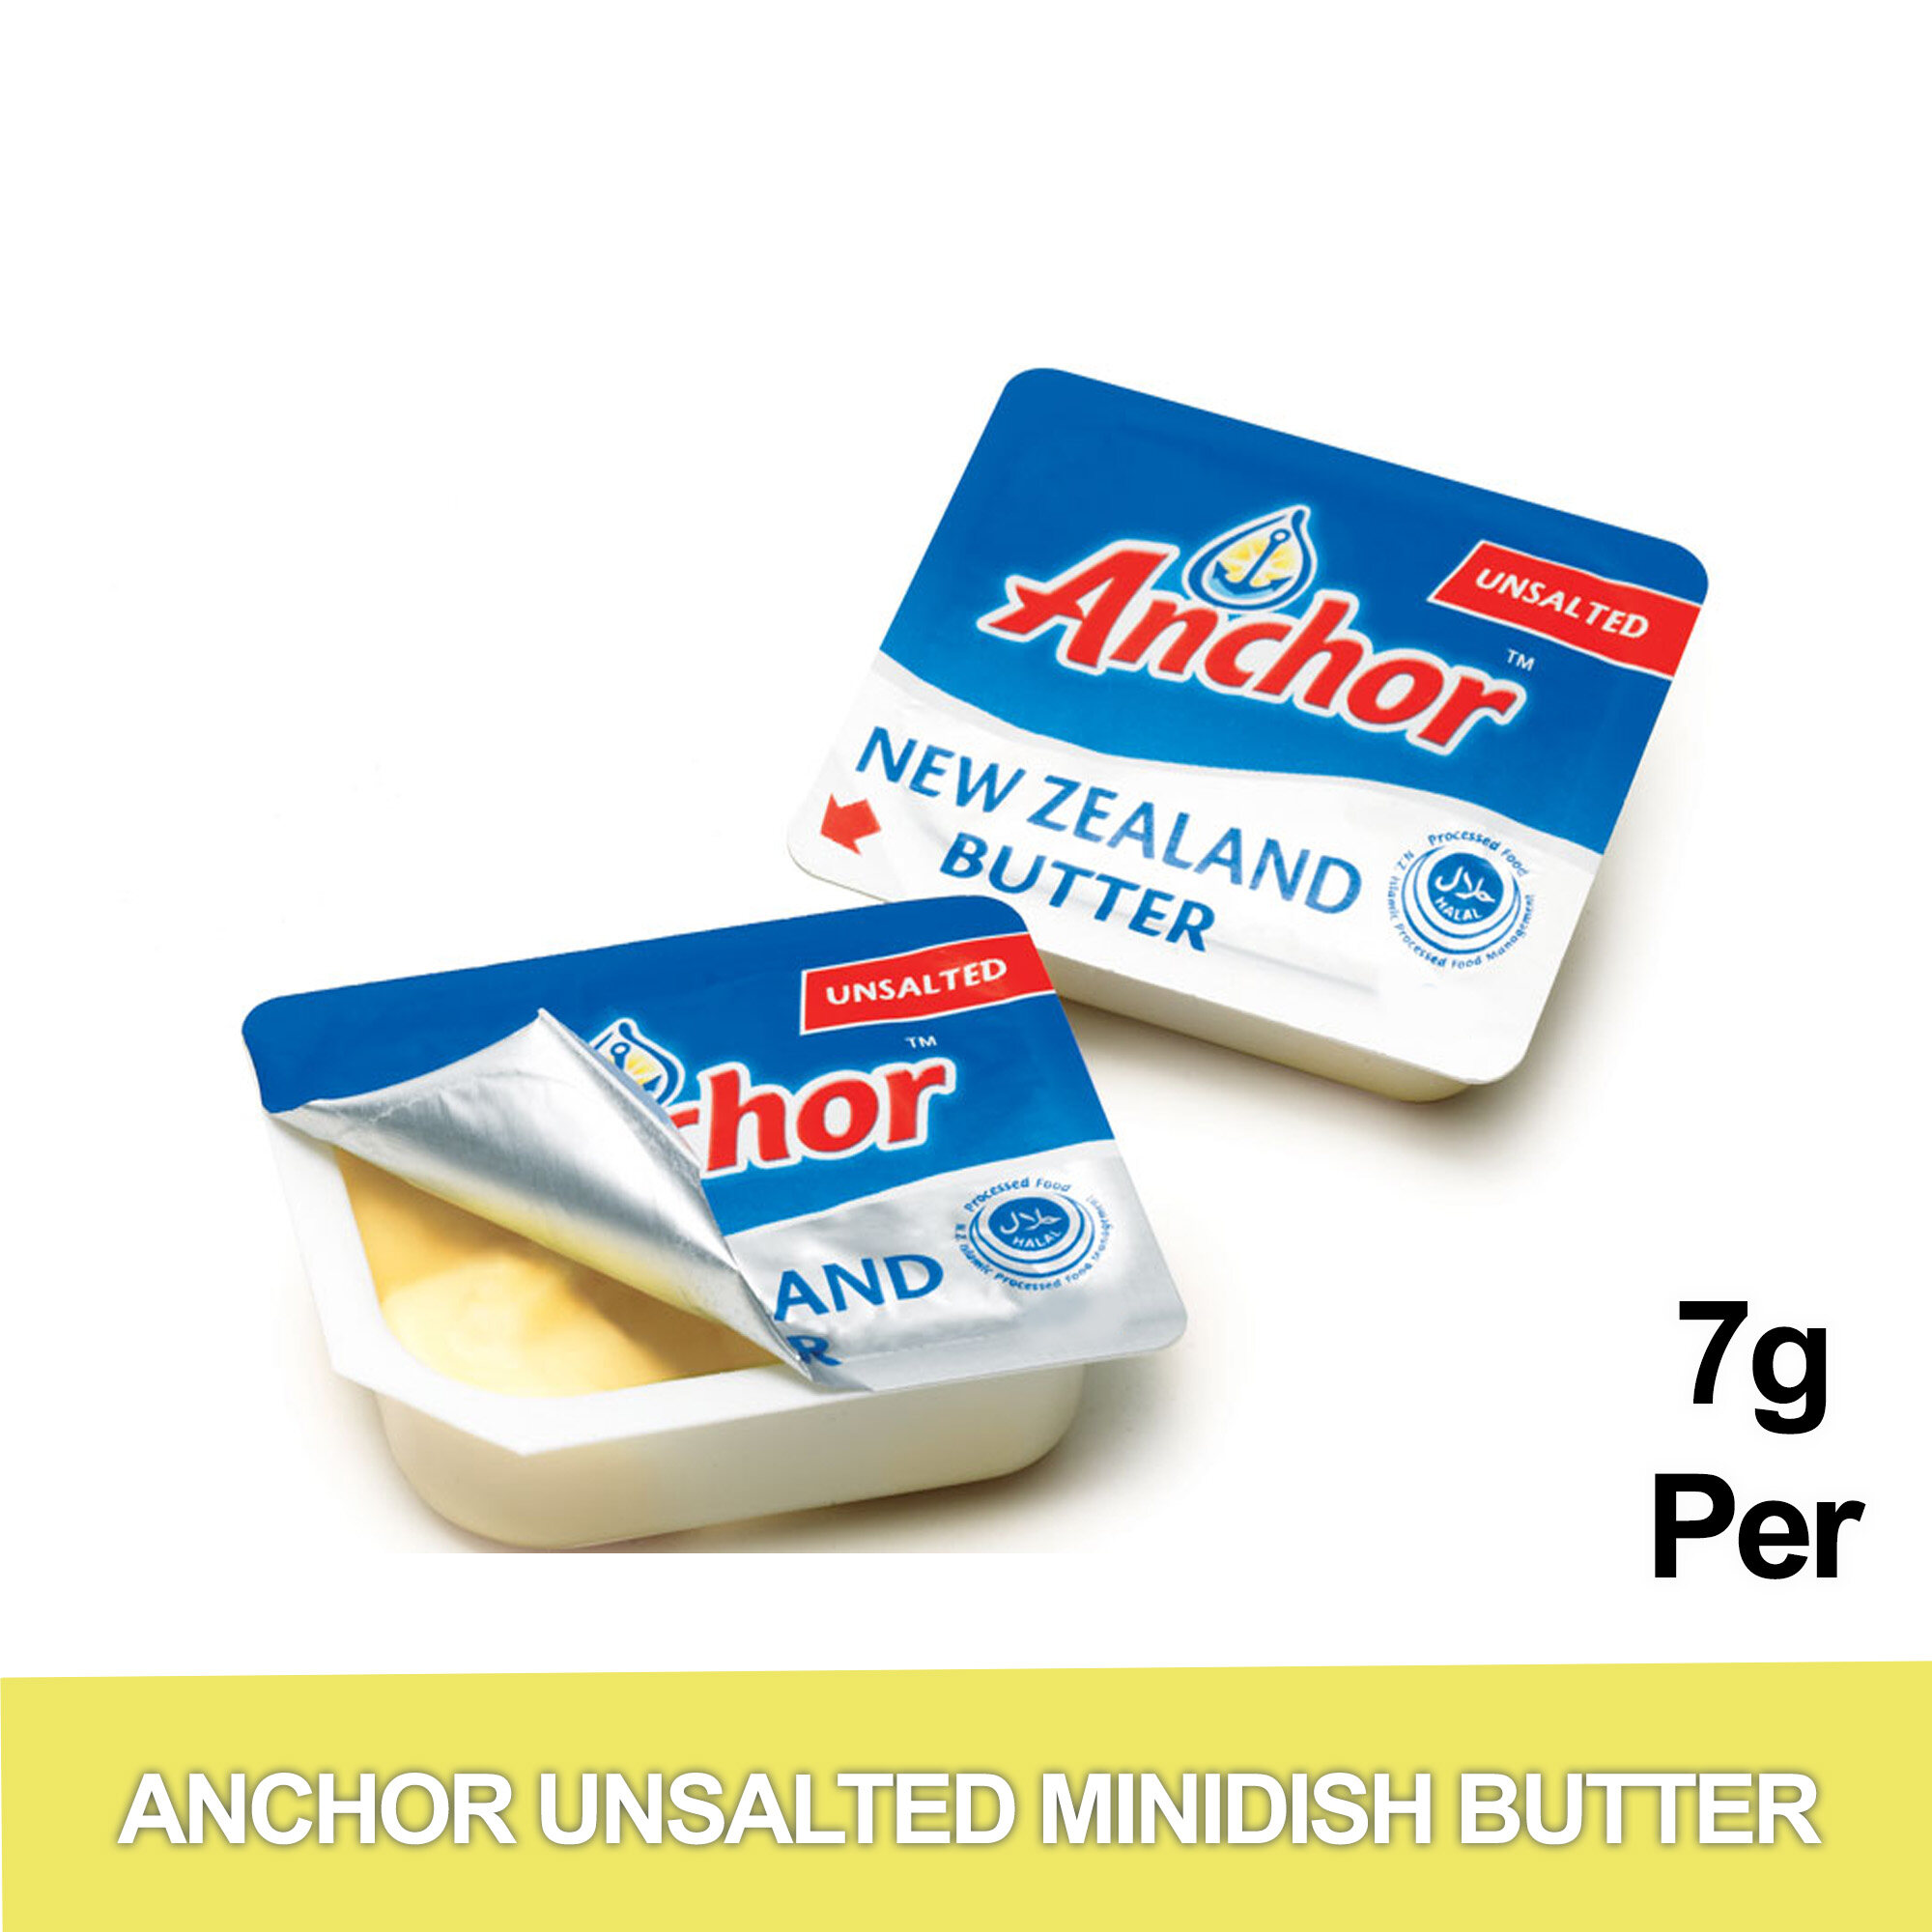 Anchor Unsalted Minidish Butter 7g 400 Units Imported Halal Certified New Zealand S Trusted Brand Made From 100 Pure New Zealand Milk Lazada